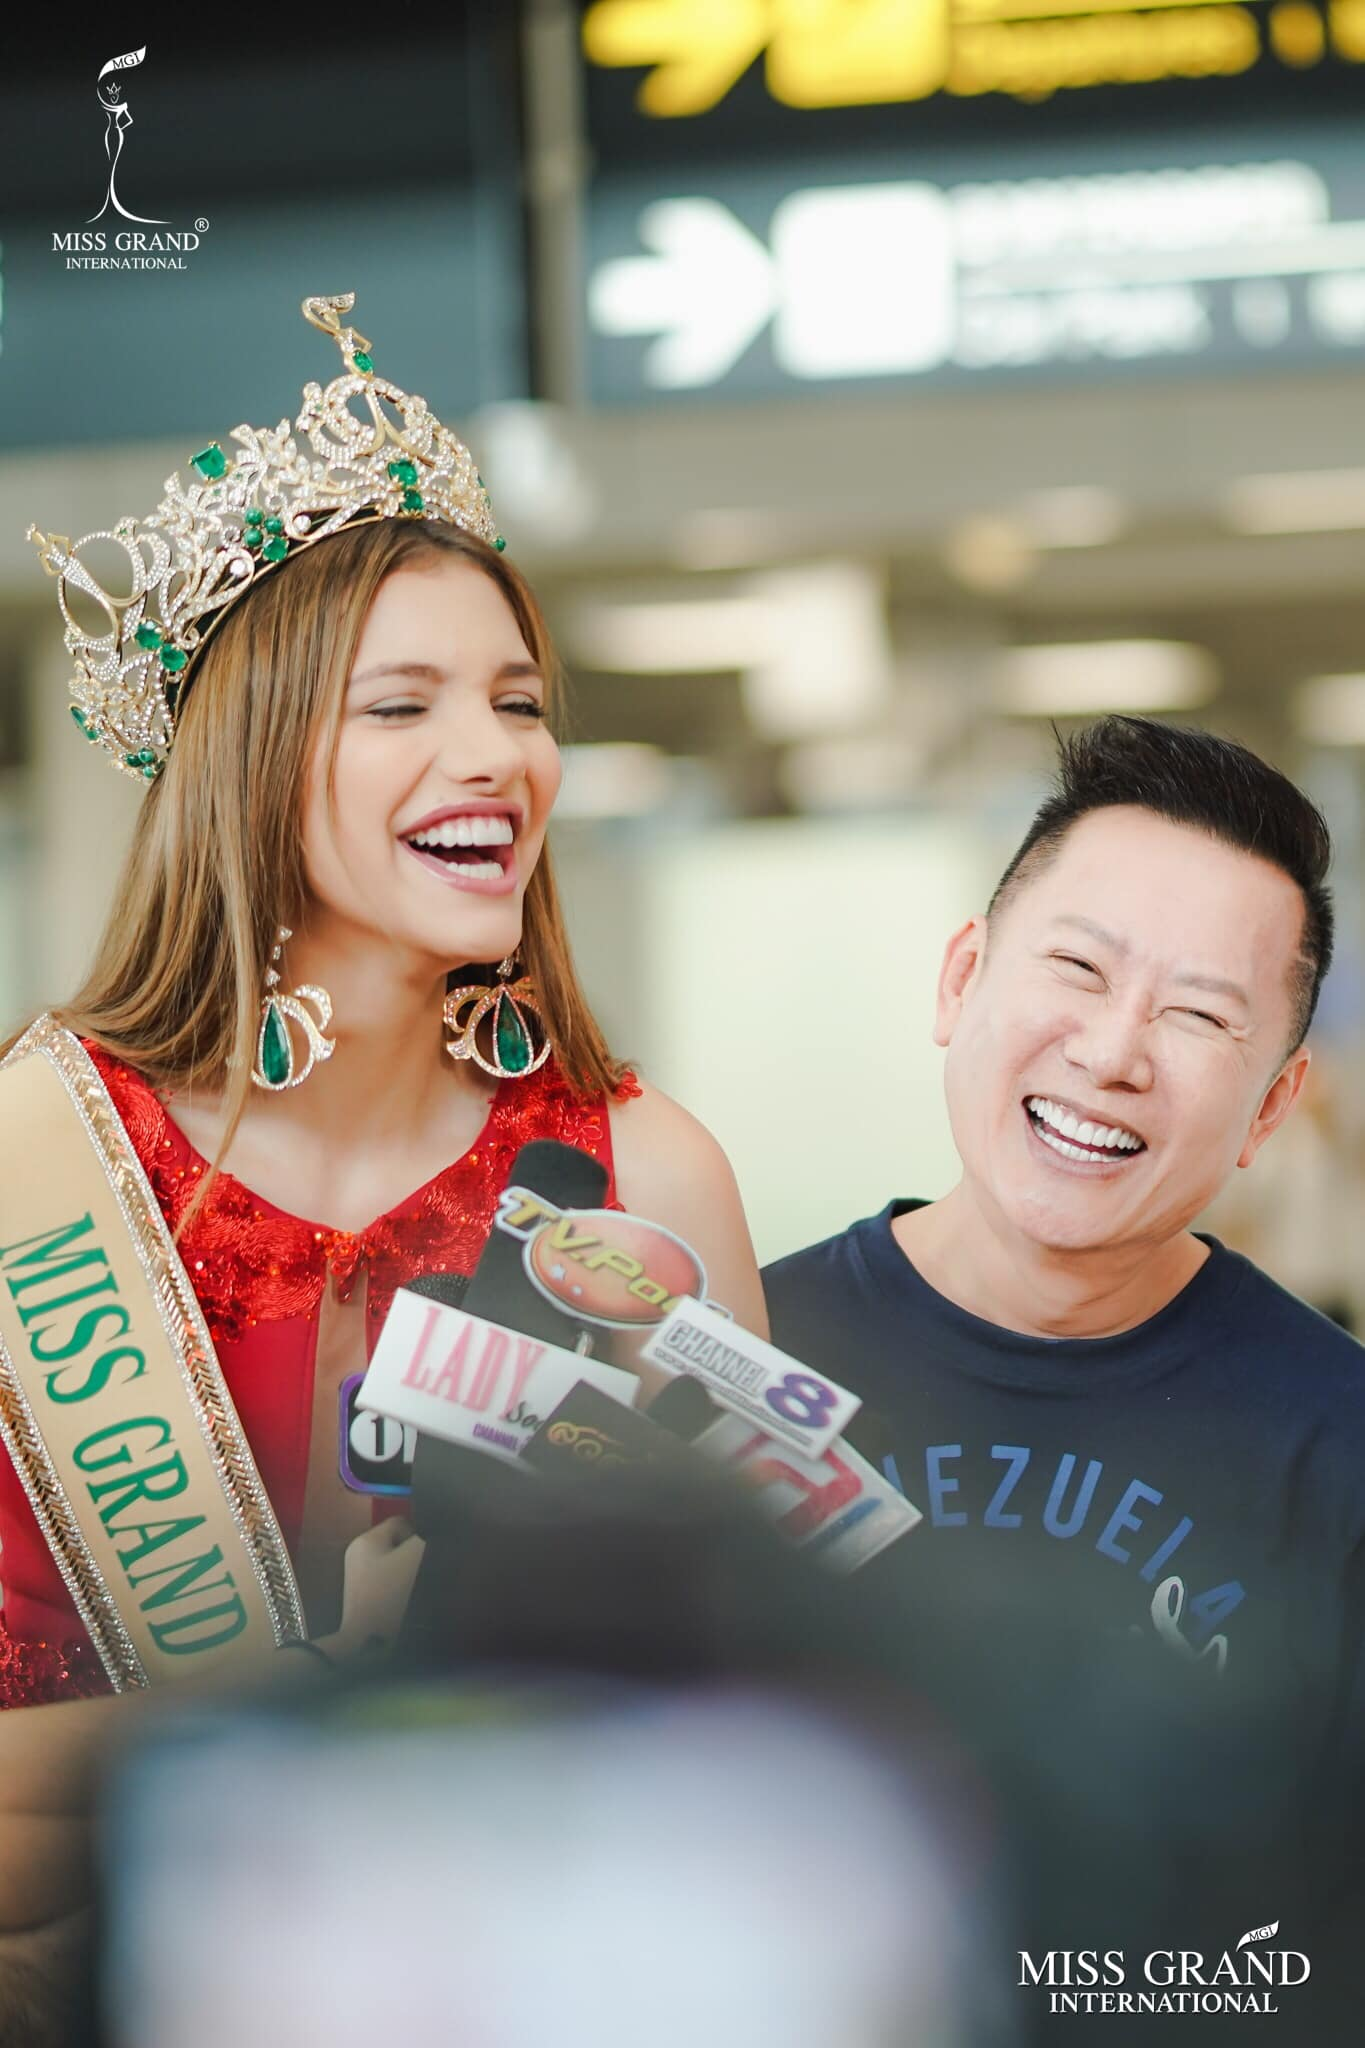 lourdes valentina figuera, miss grand international 2019. - Página 13 Prehq10